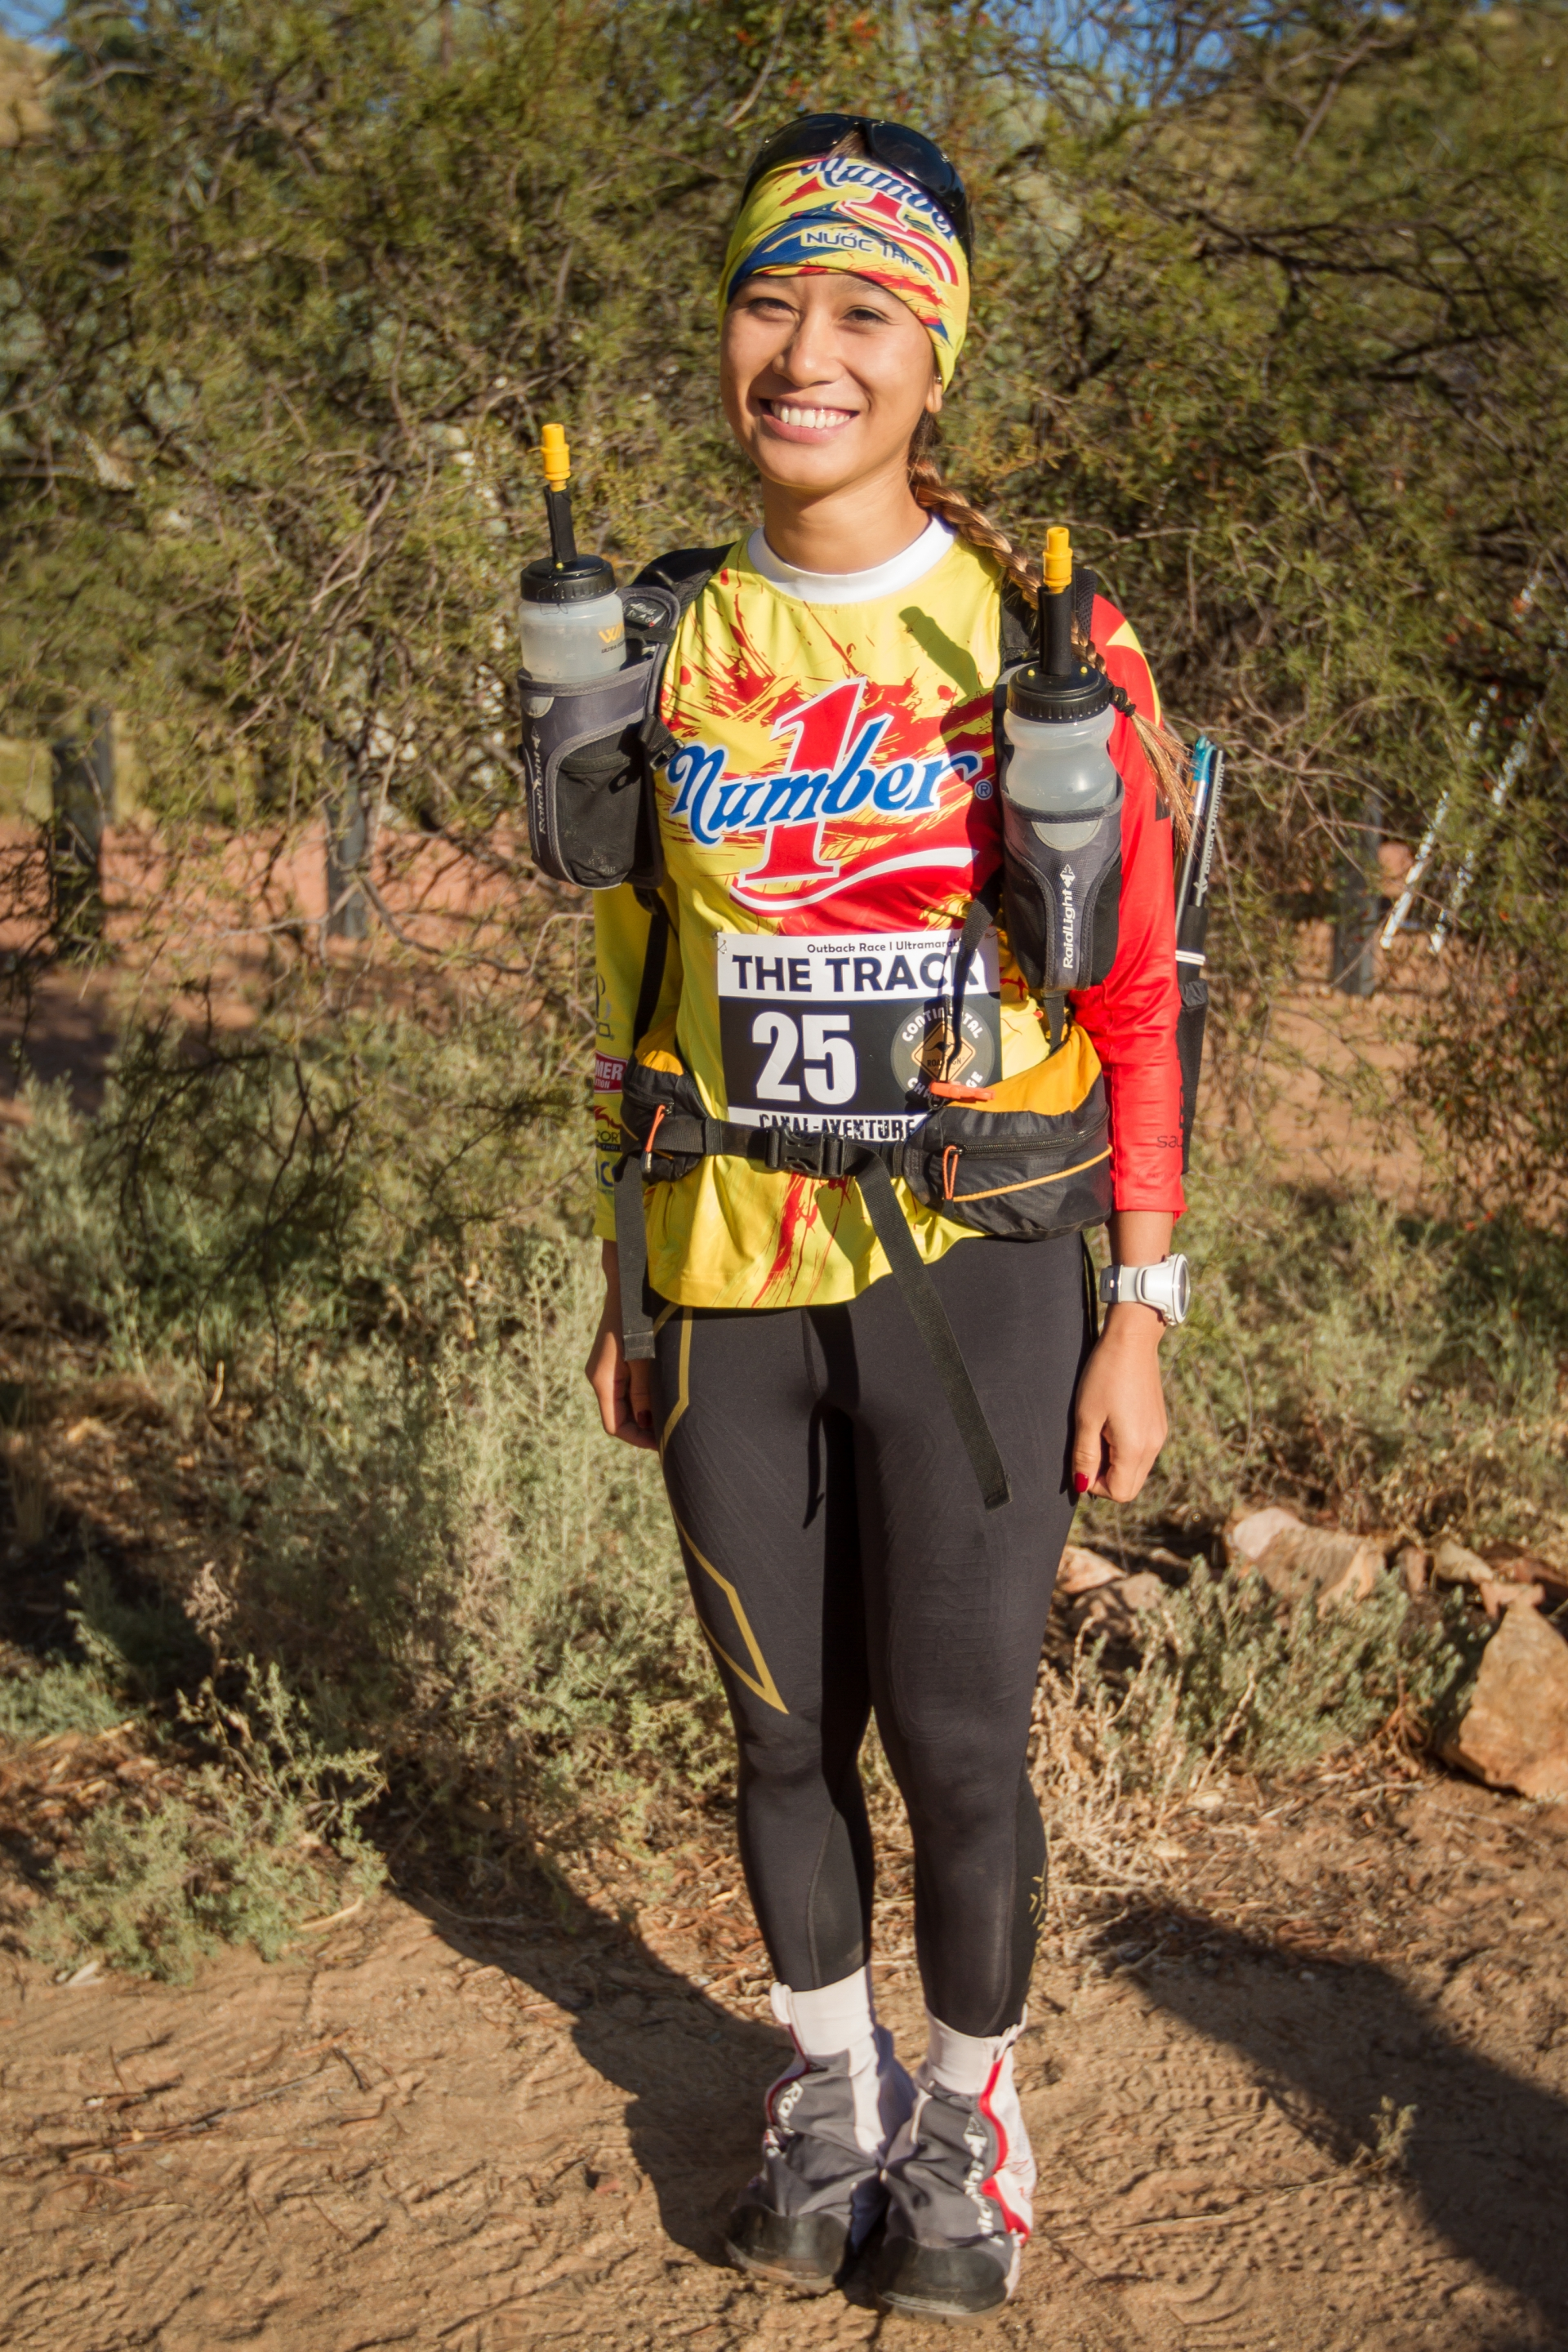 determination makes champions says young adventurer vu phuong thanh